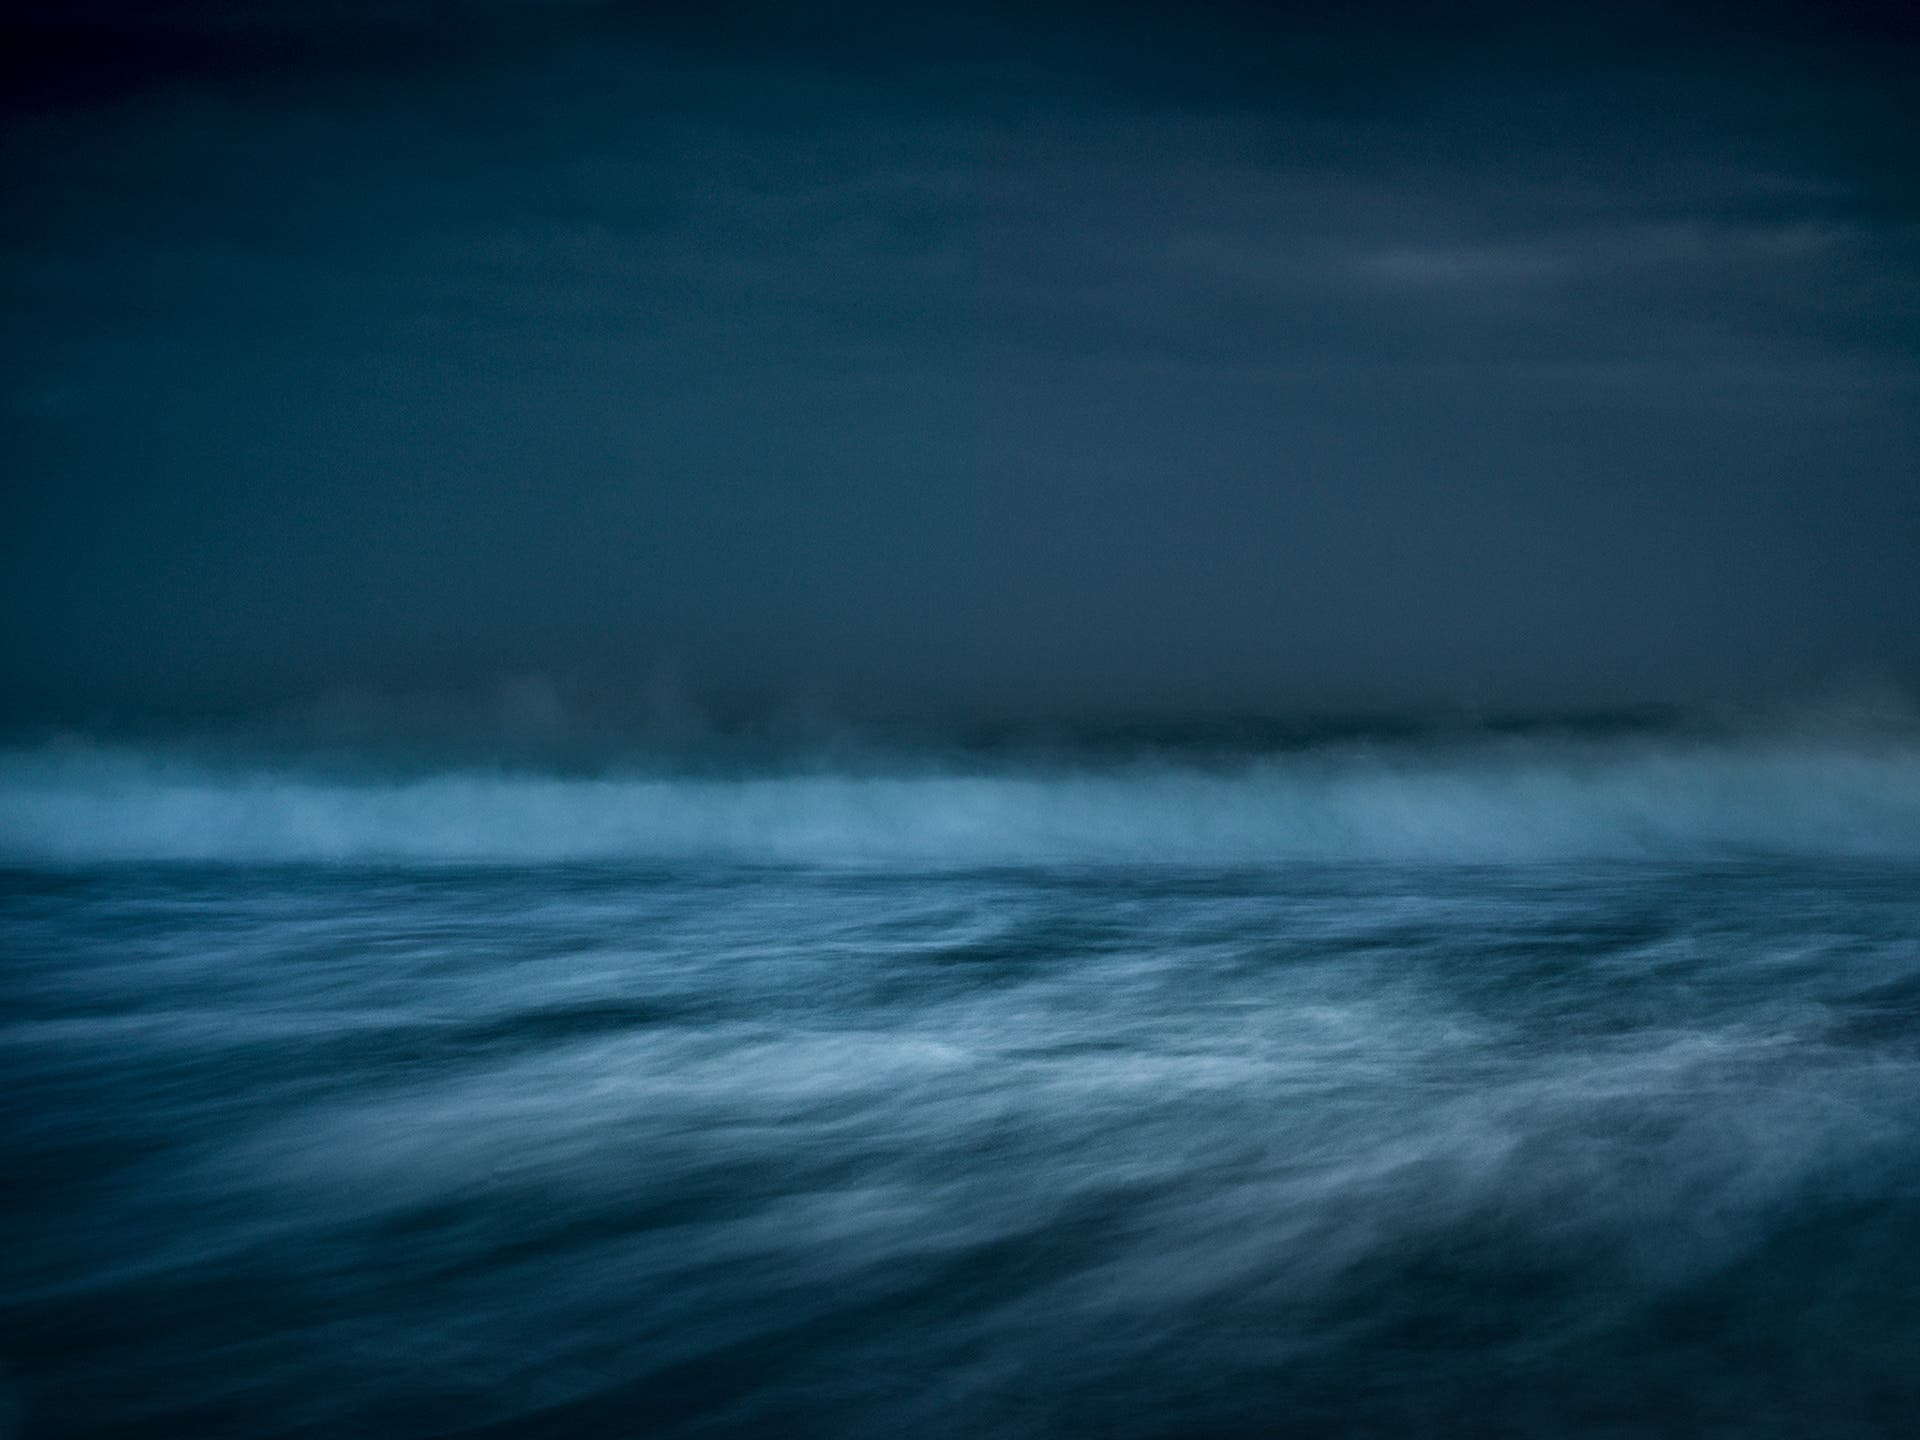 Dive Into the Painterly Nocturnal Seascapes of Antti Viitala